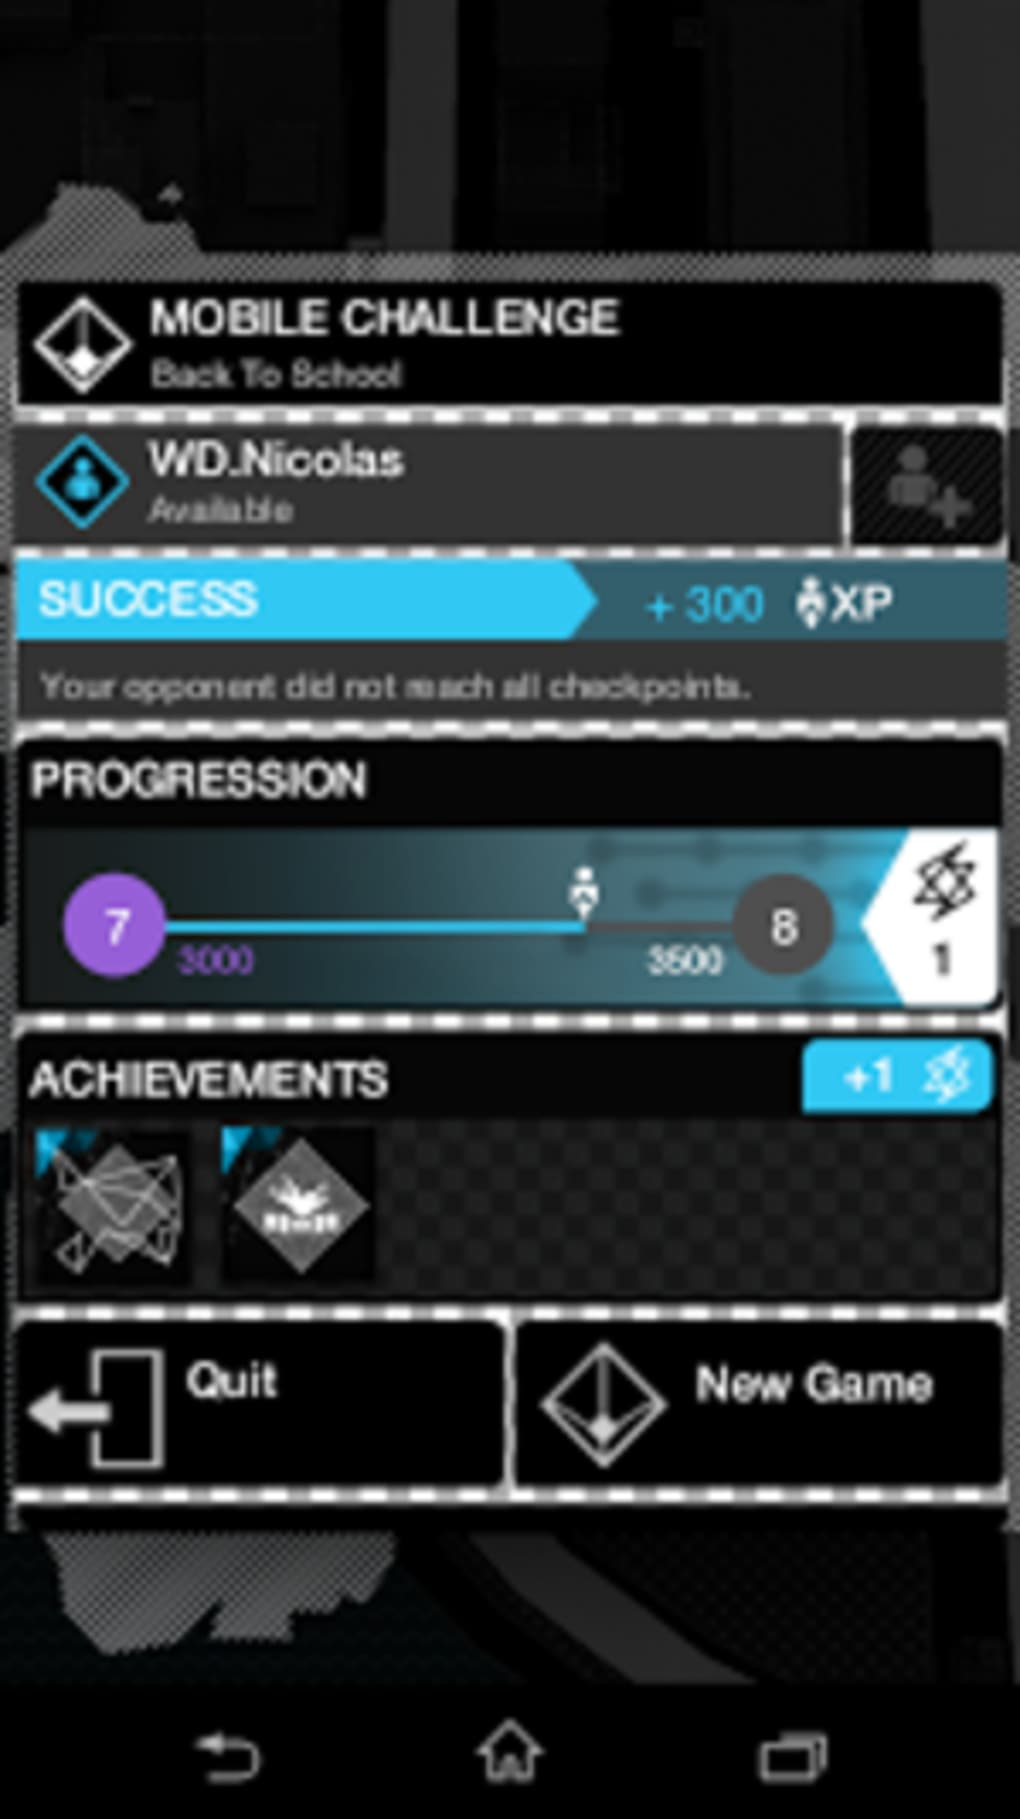 Watch_Dogs Companion: ctOS for Android - Download